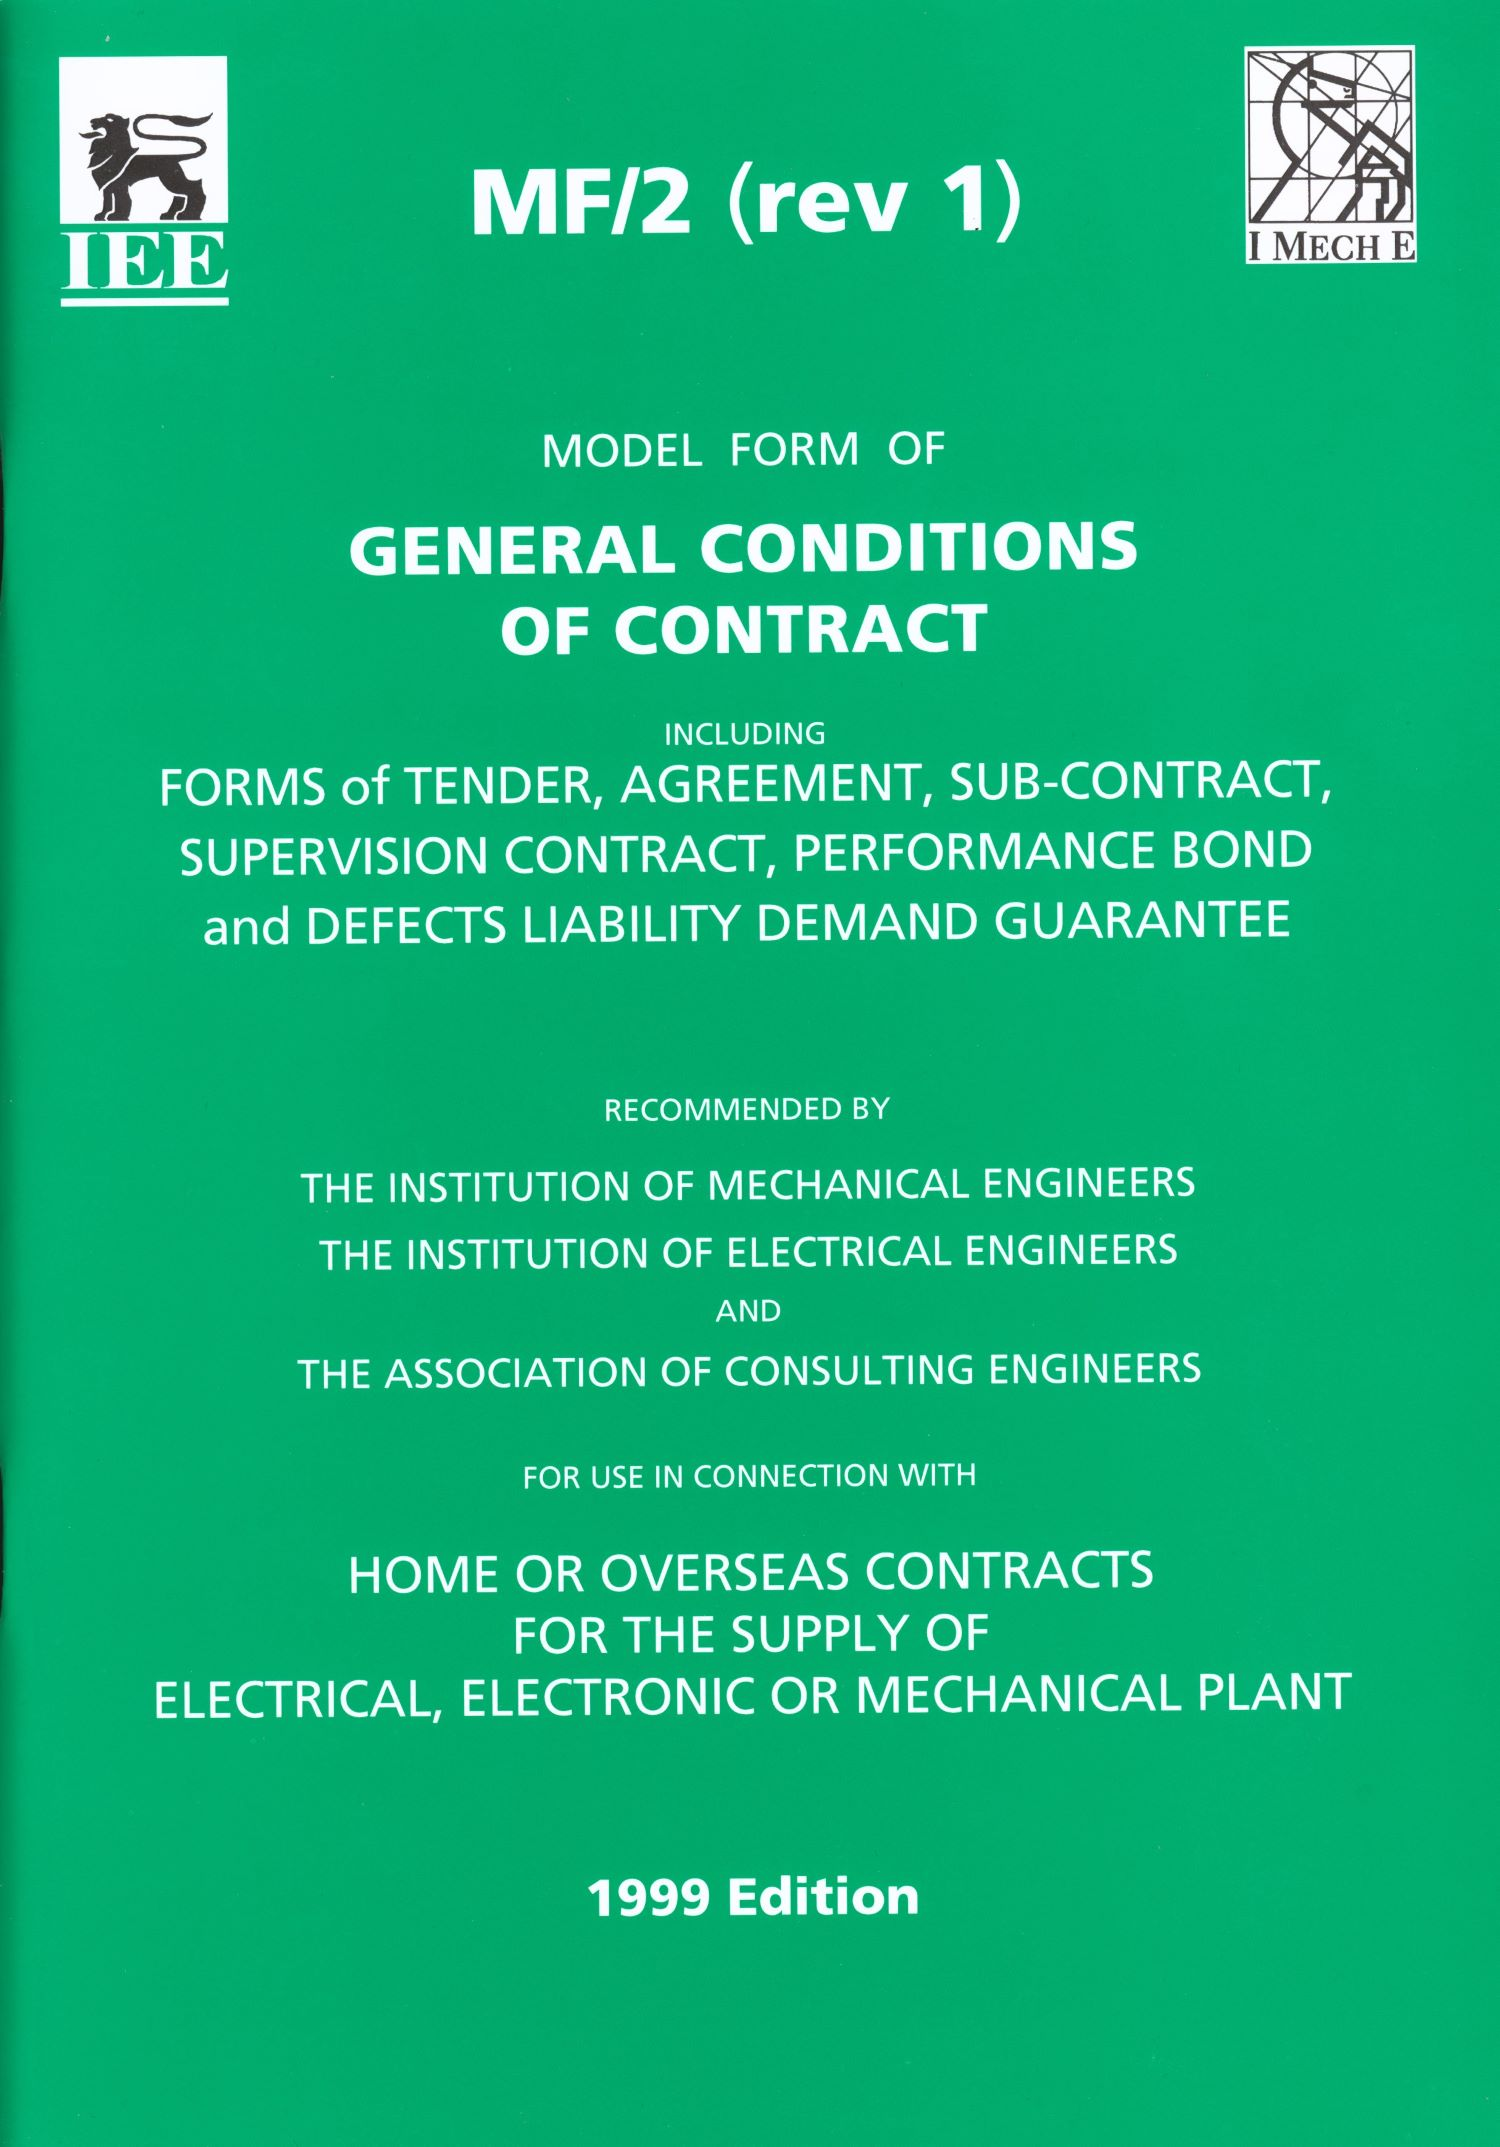 MF/2 Model (Revis 1) Form General Condits Contract